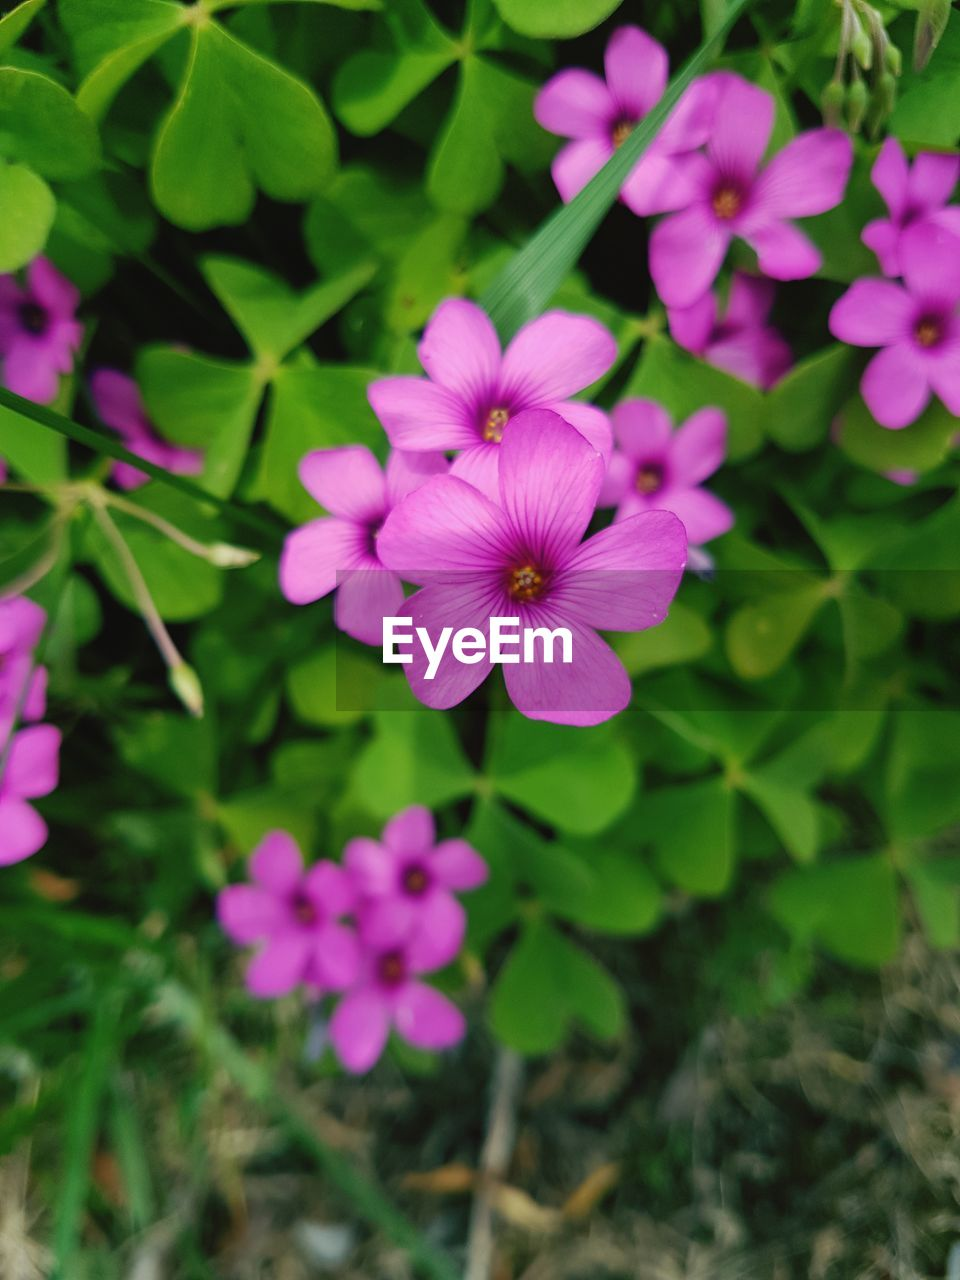 flower, petal, fragility, beauty in nature, growth, purple, nature, flower head, freshness, blooming, plant, high angle view, day, pink color, outdoors, no people, osteospermum, periwinkle, petunia, close-up